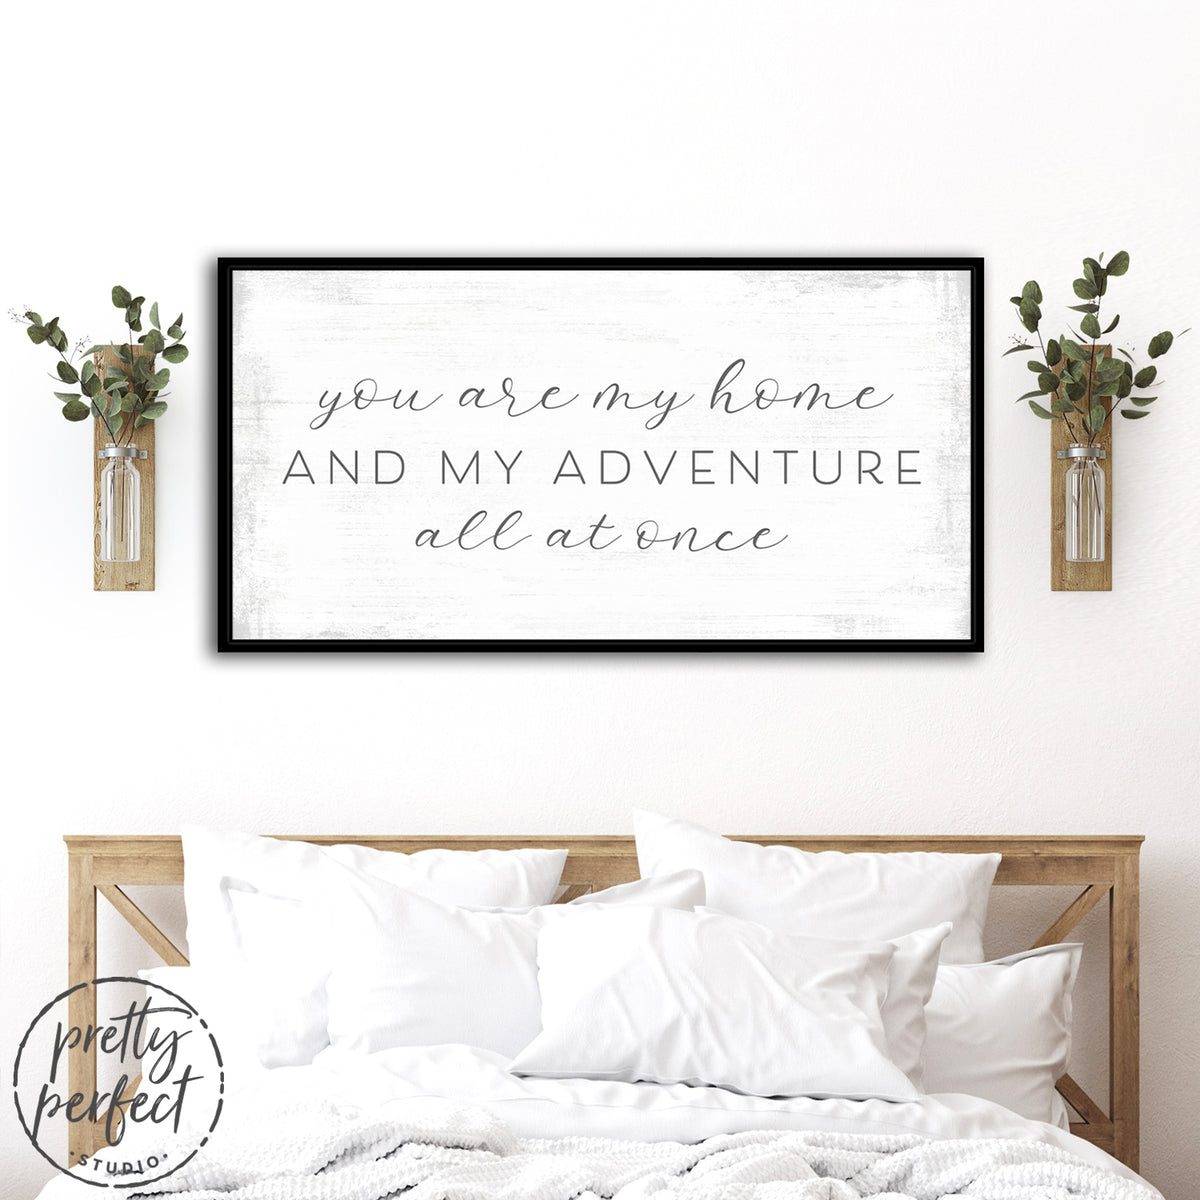 You Are My Home and My Adventure All at Once Sign Above Bed in Master Bedroom - Pretty Perfect Studio